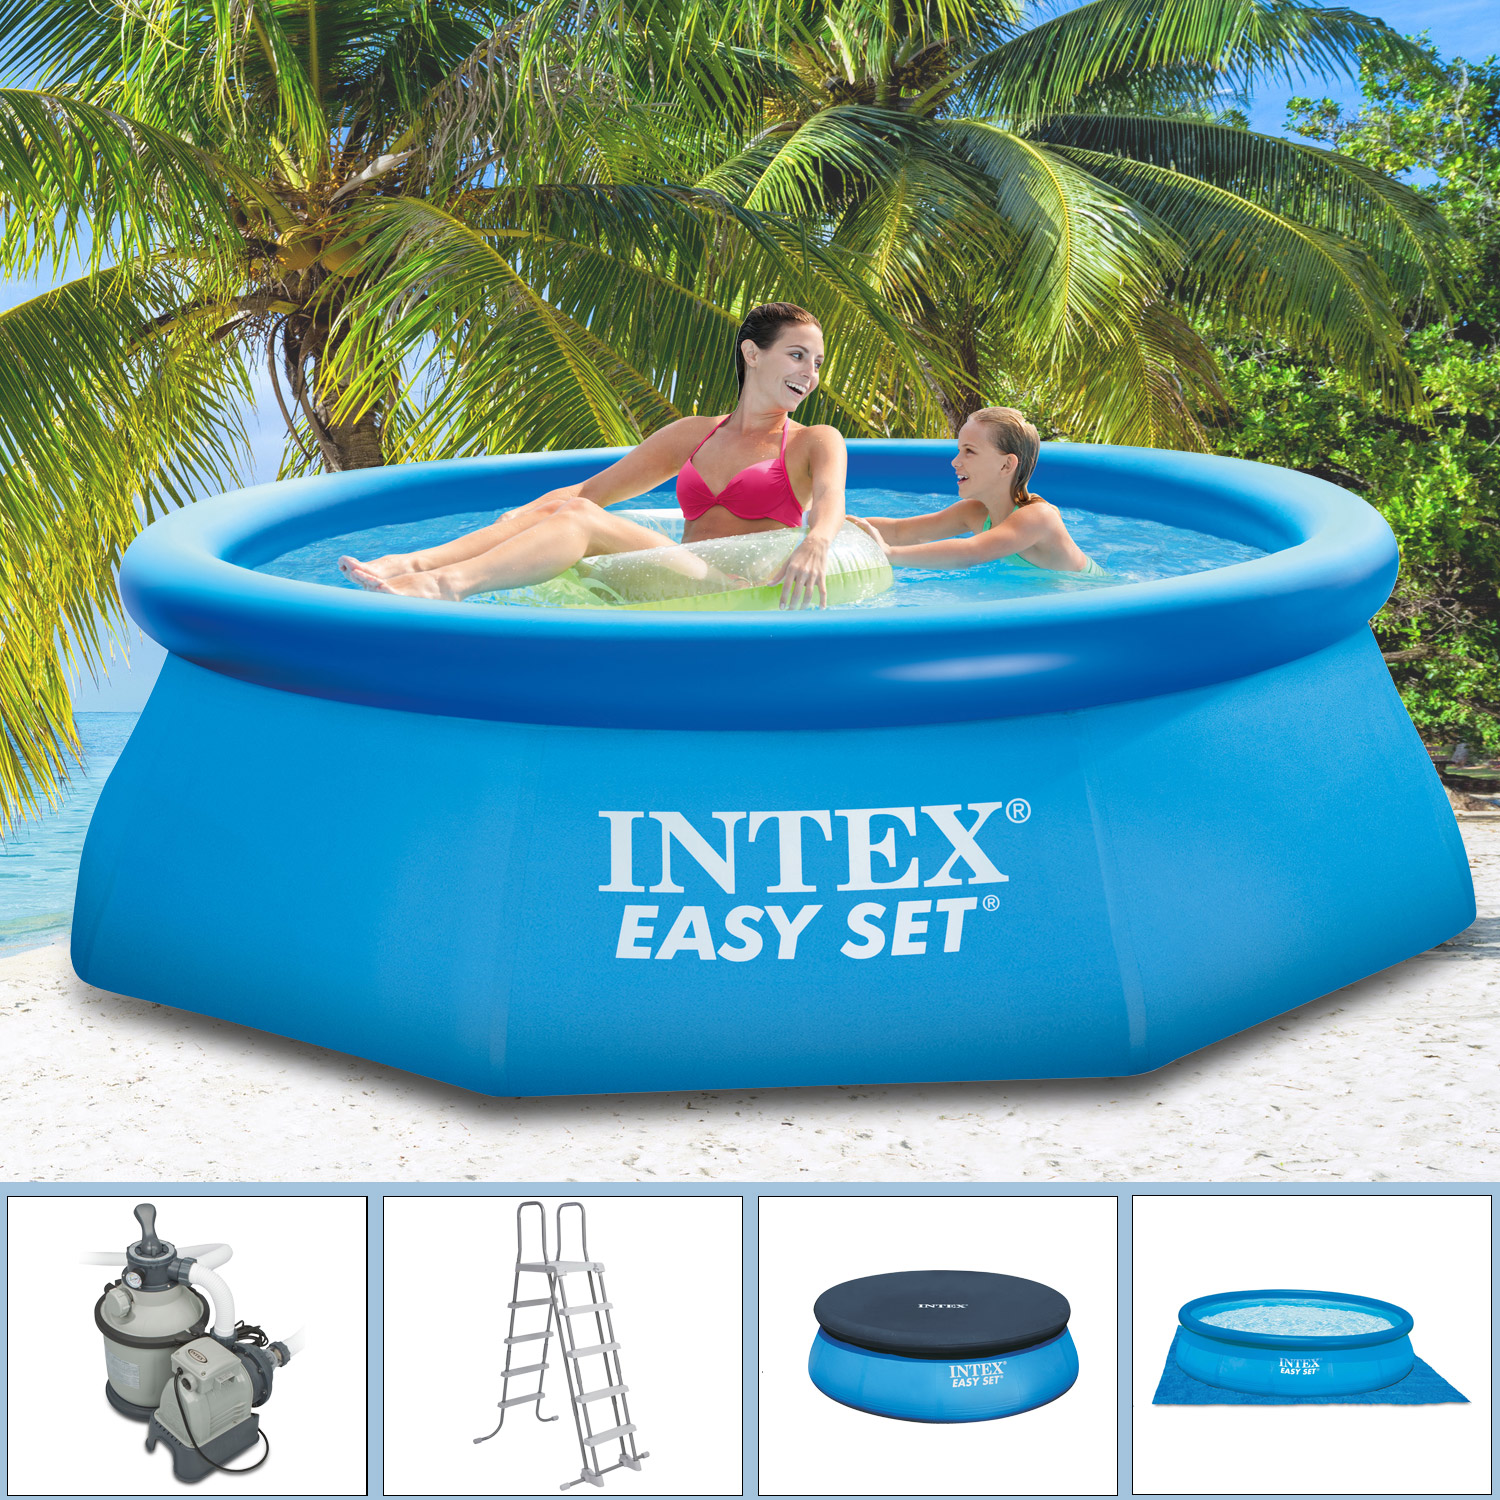 intex 305x91 komplettset sandfilterpumpe schwimmbecken schwimmbad swimming pool ebay. Black Bedroom Furniture Sets. Home Design Ideas